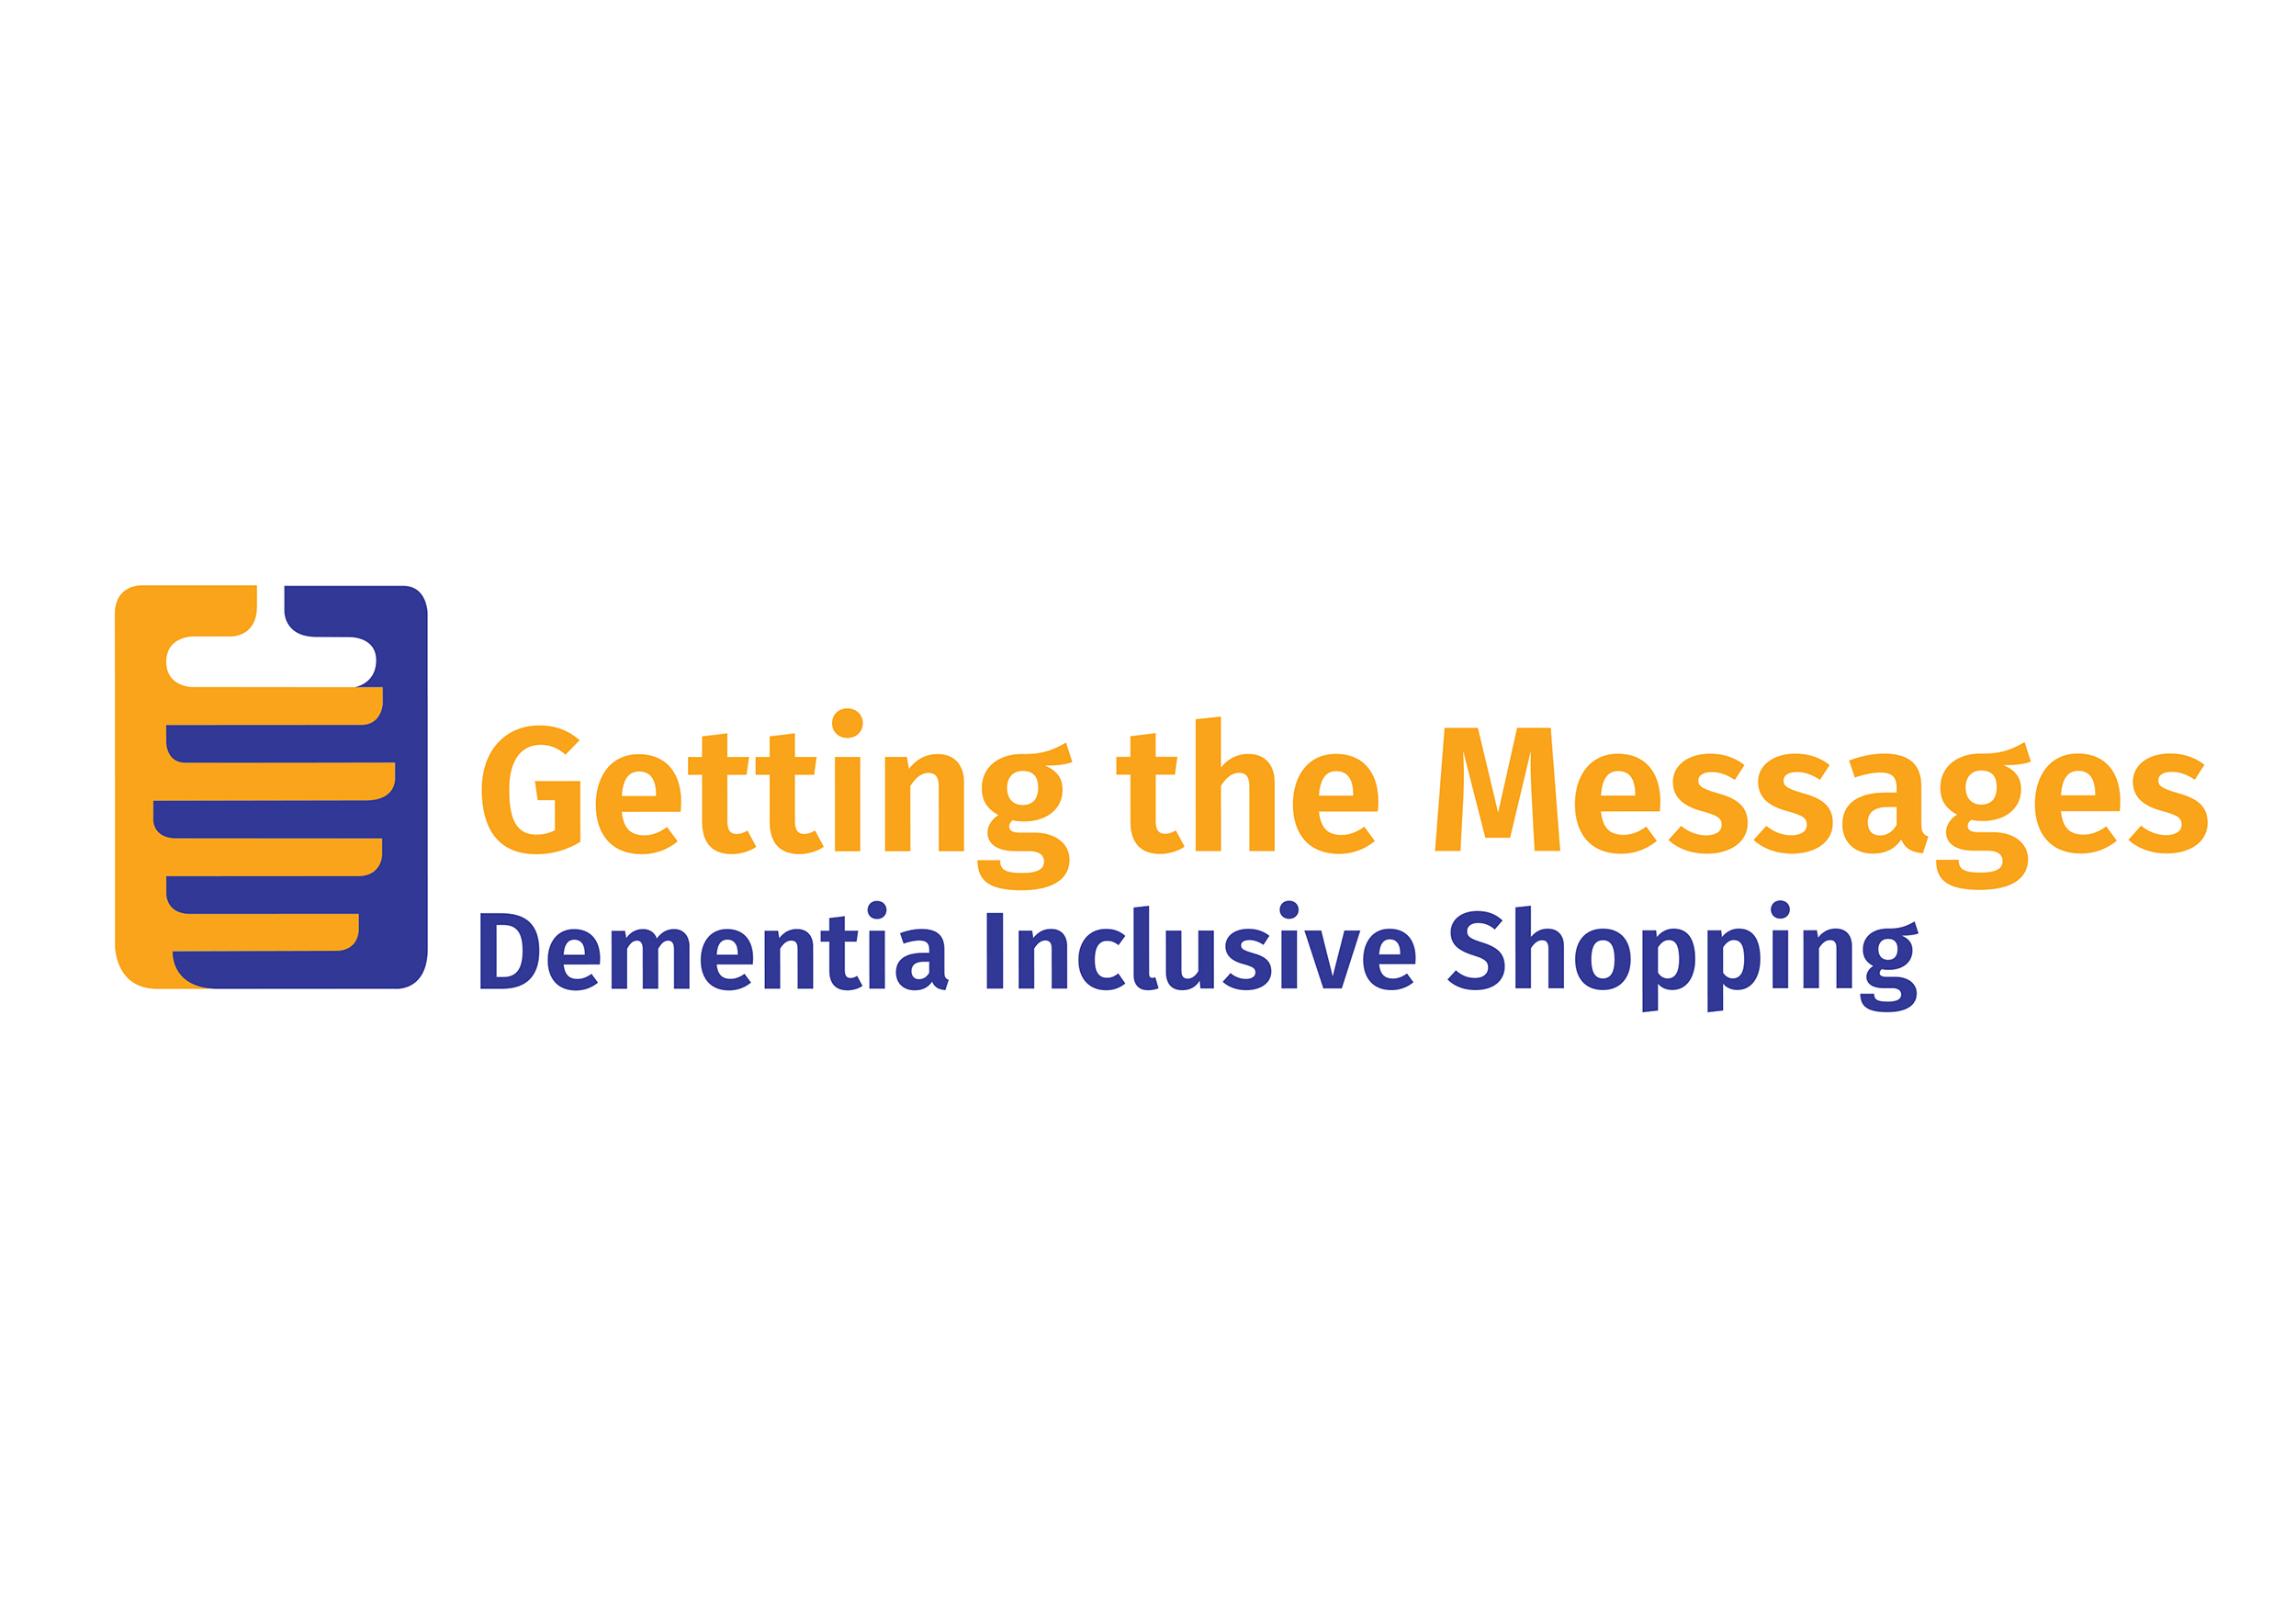 Cover image: Getting the Messages - Dementia Inclusive Shopping